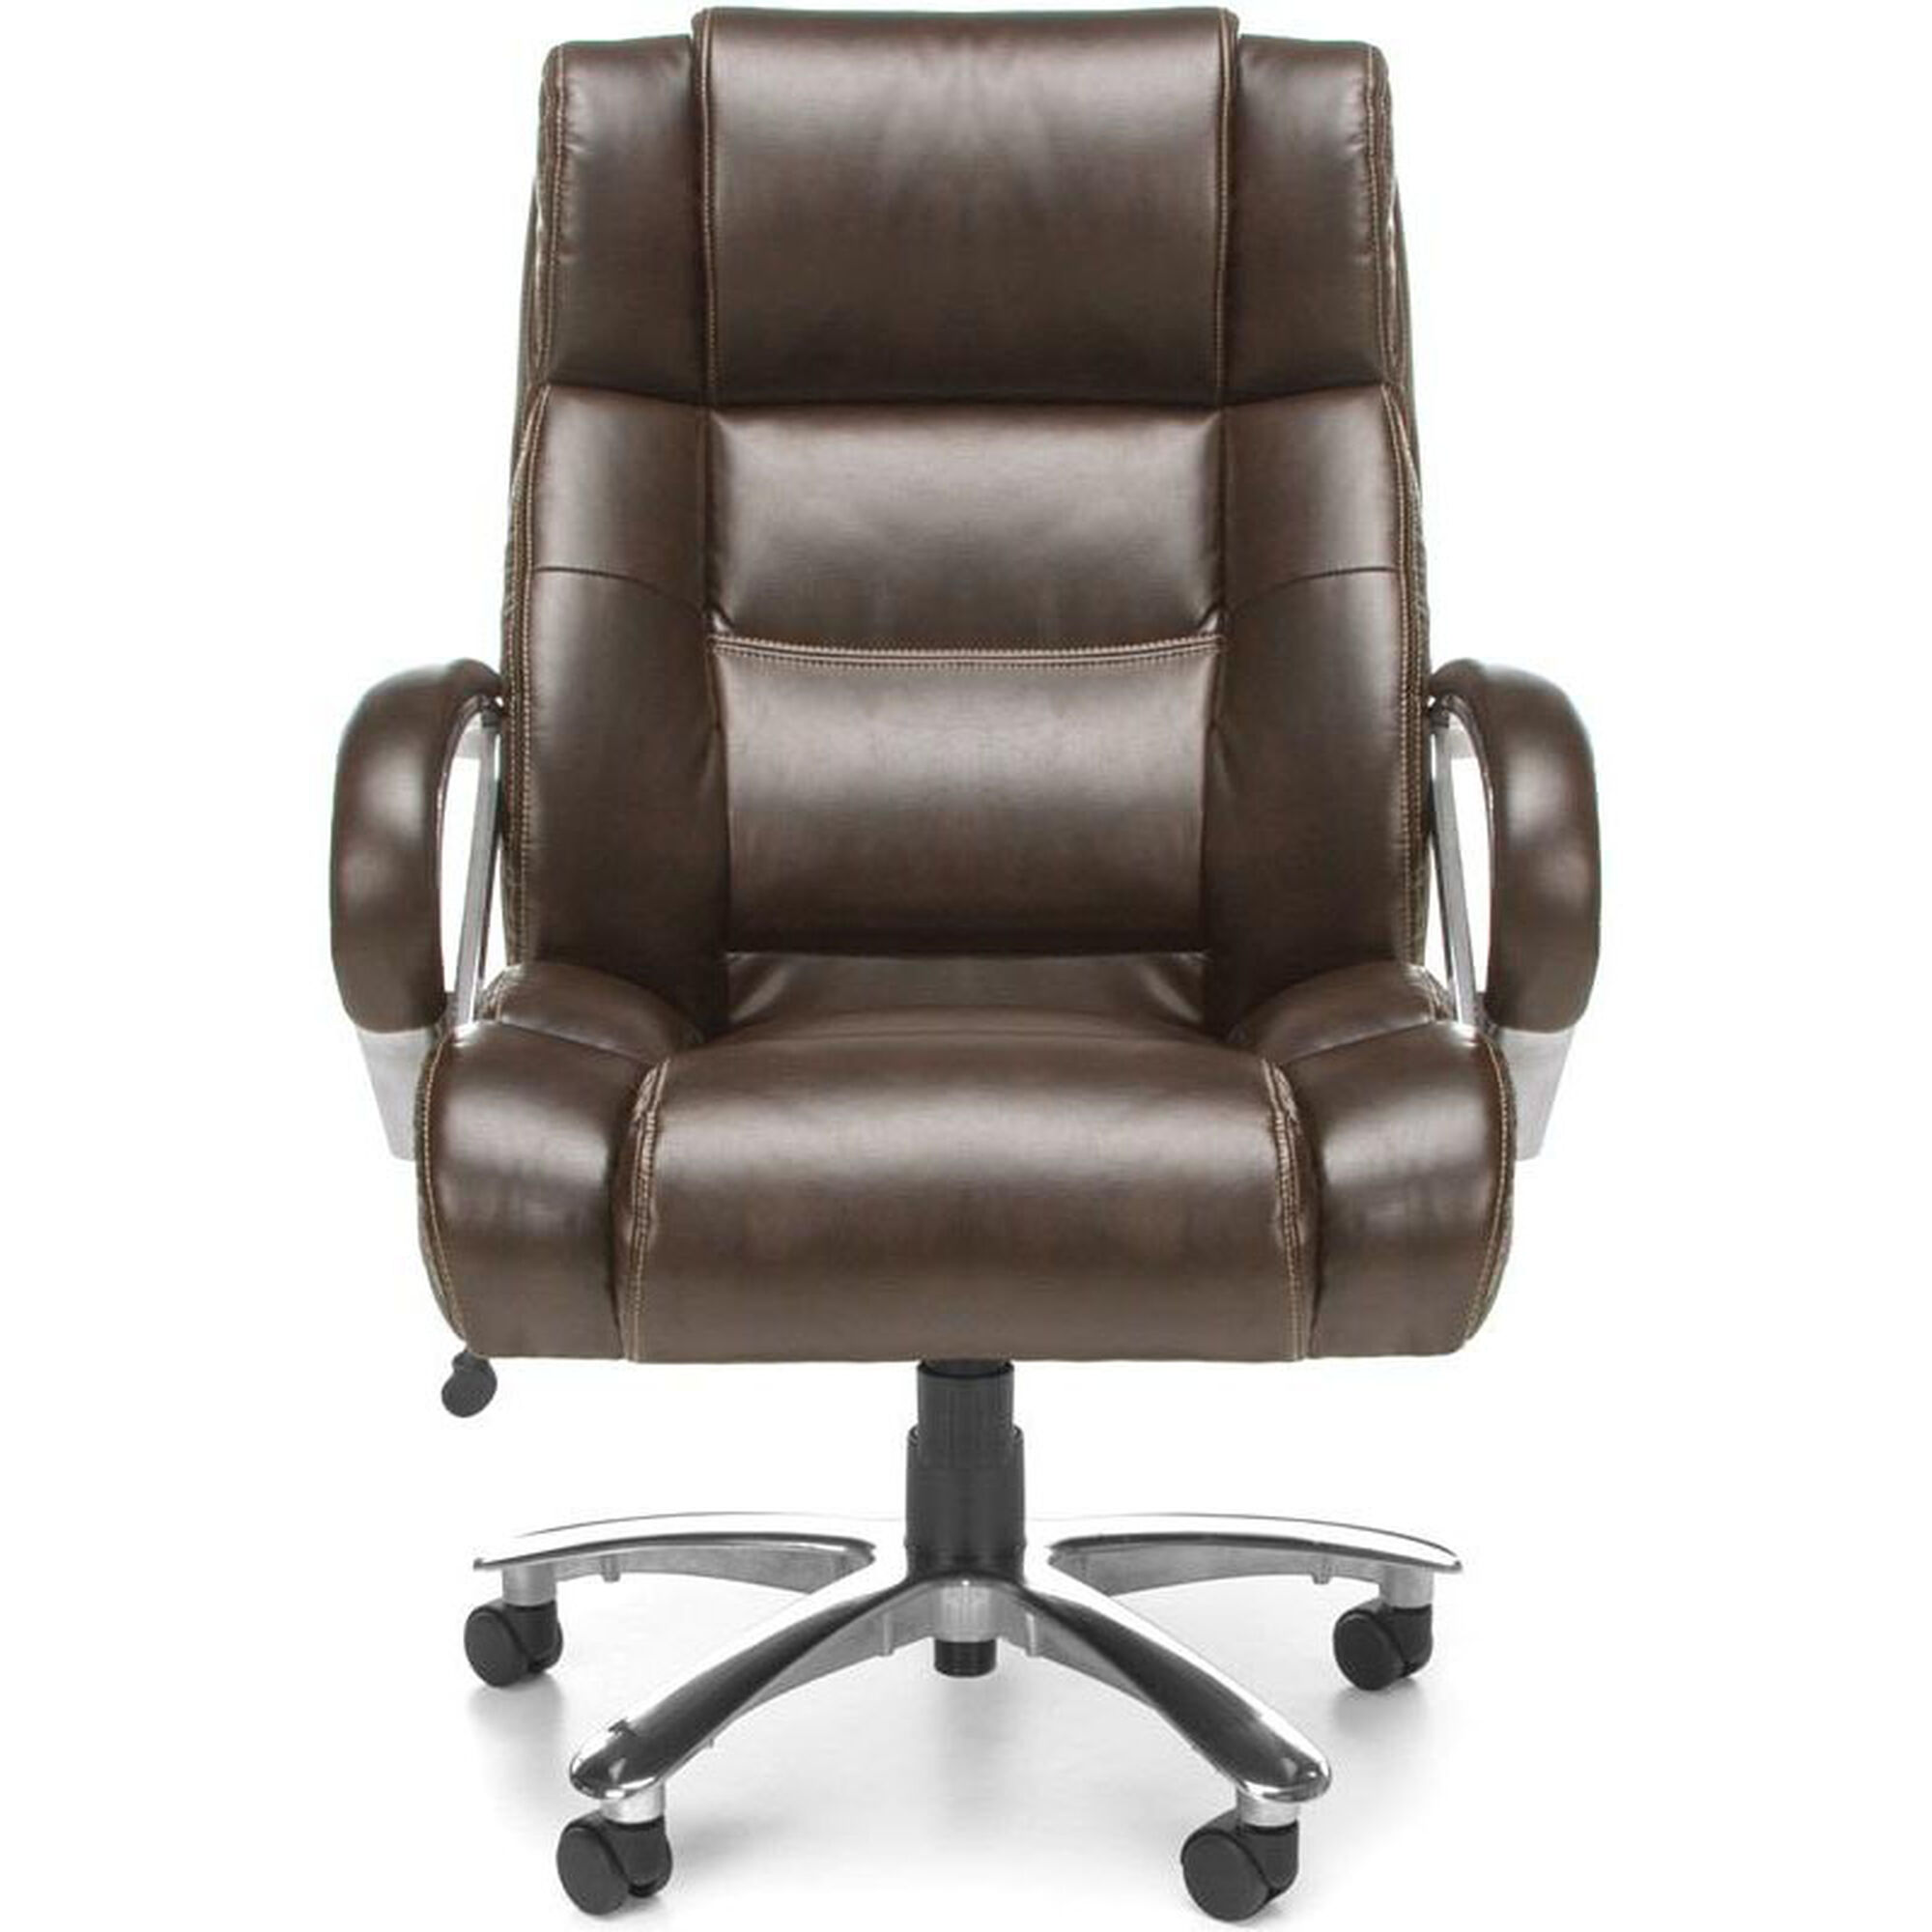 Our Avenger 500 Lb Capacity Big Tall Executive High Back Chair Brown Is Tap To Expand